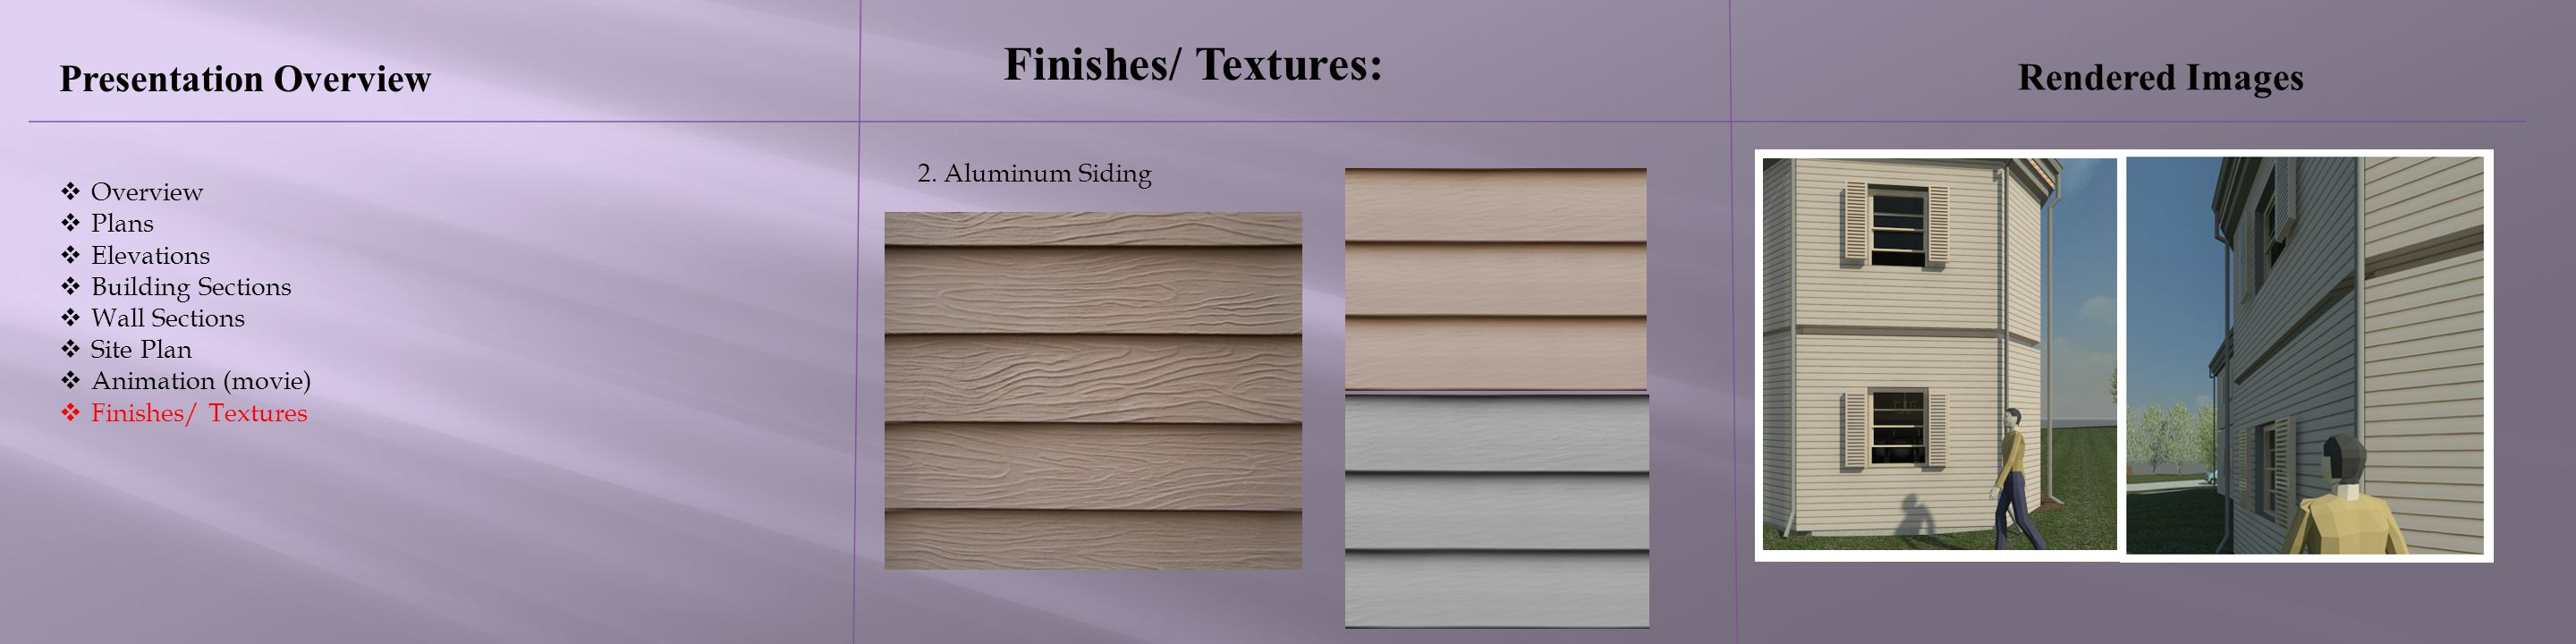 Finishes/ Textures: Presentation Overview Rendered Images